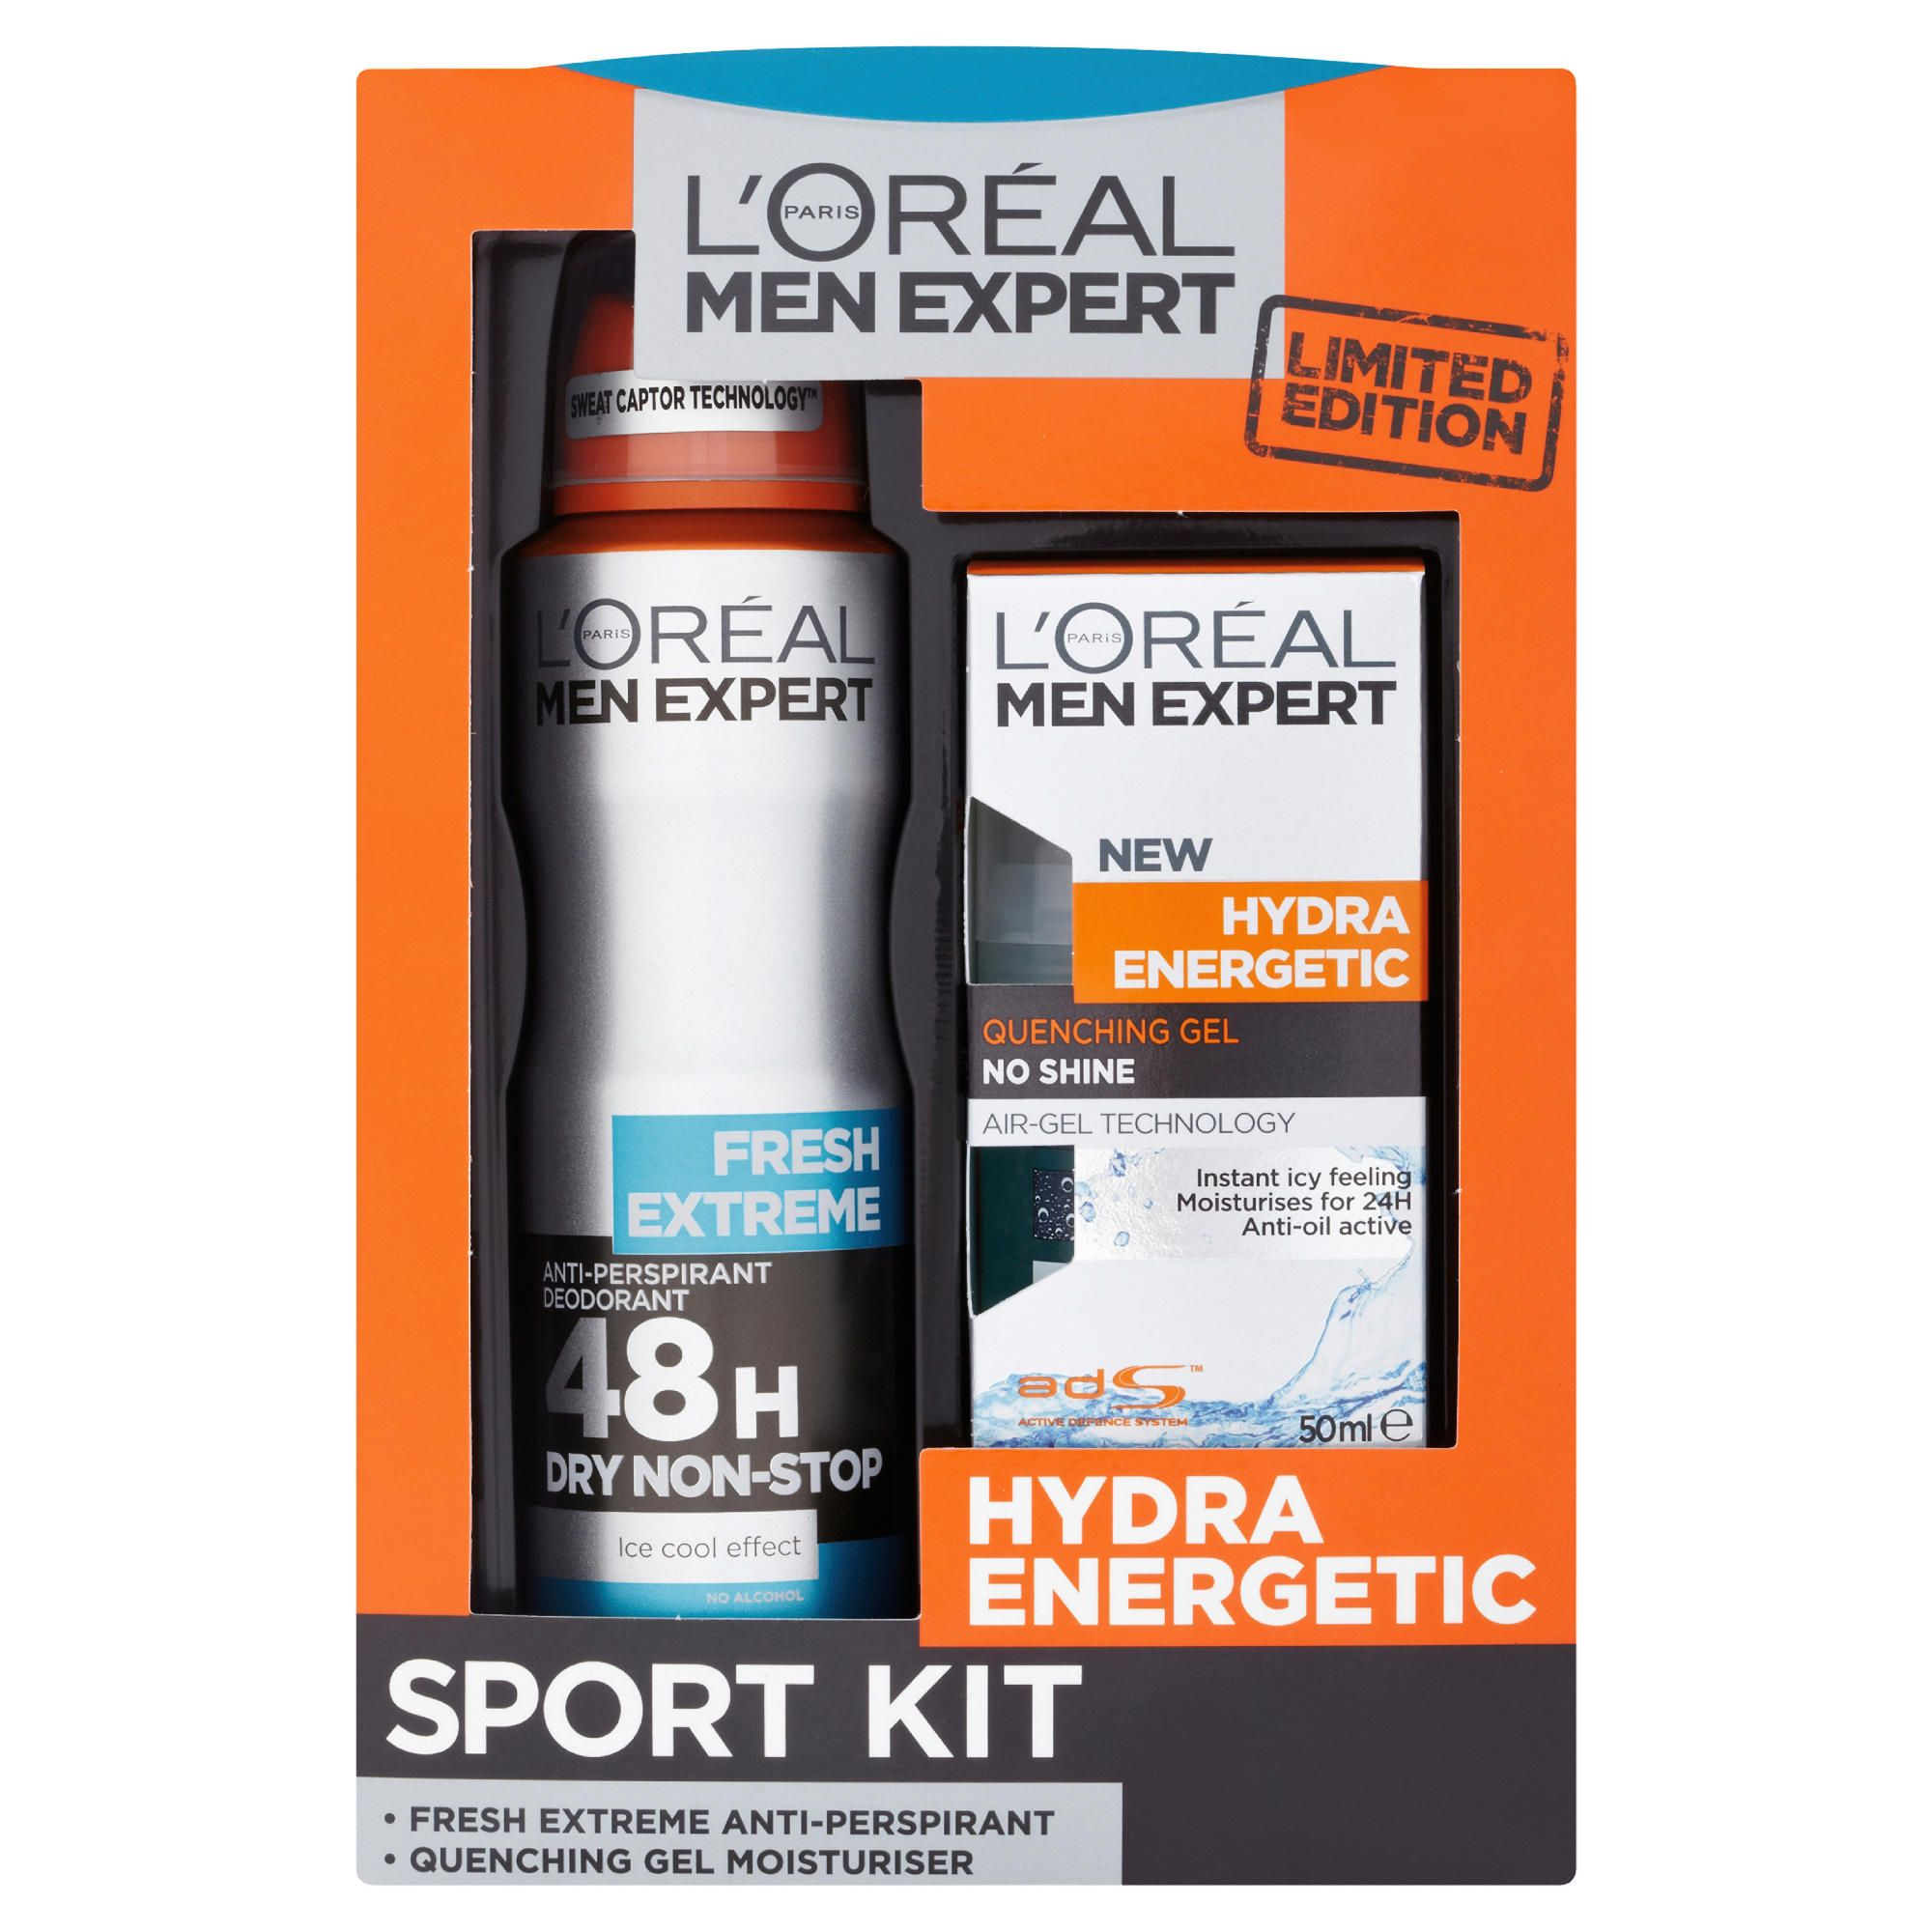 cosmetics and men expert 2018-3-10 the l'oreal paris men's line, appropriately named men's expert, is a comprehensive line of men's skin care products designed to address the needs of each man's skin as he ages.